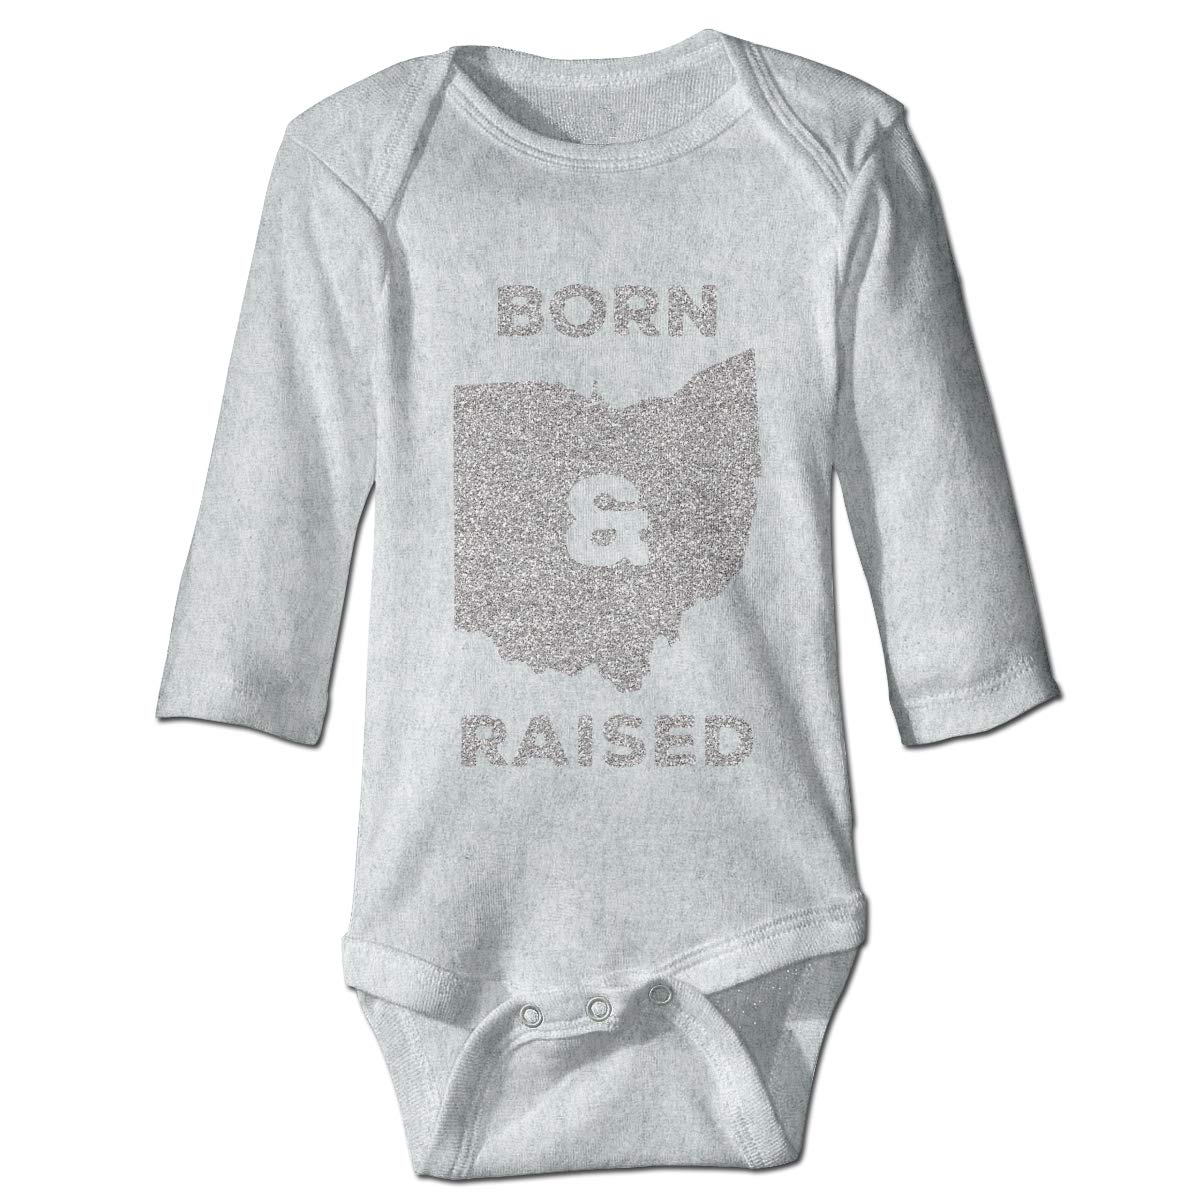 XHX Babys Ohio Born and Raised Long Sleeve Romper Onesie Bodysuit Jumpsuit